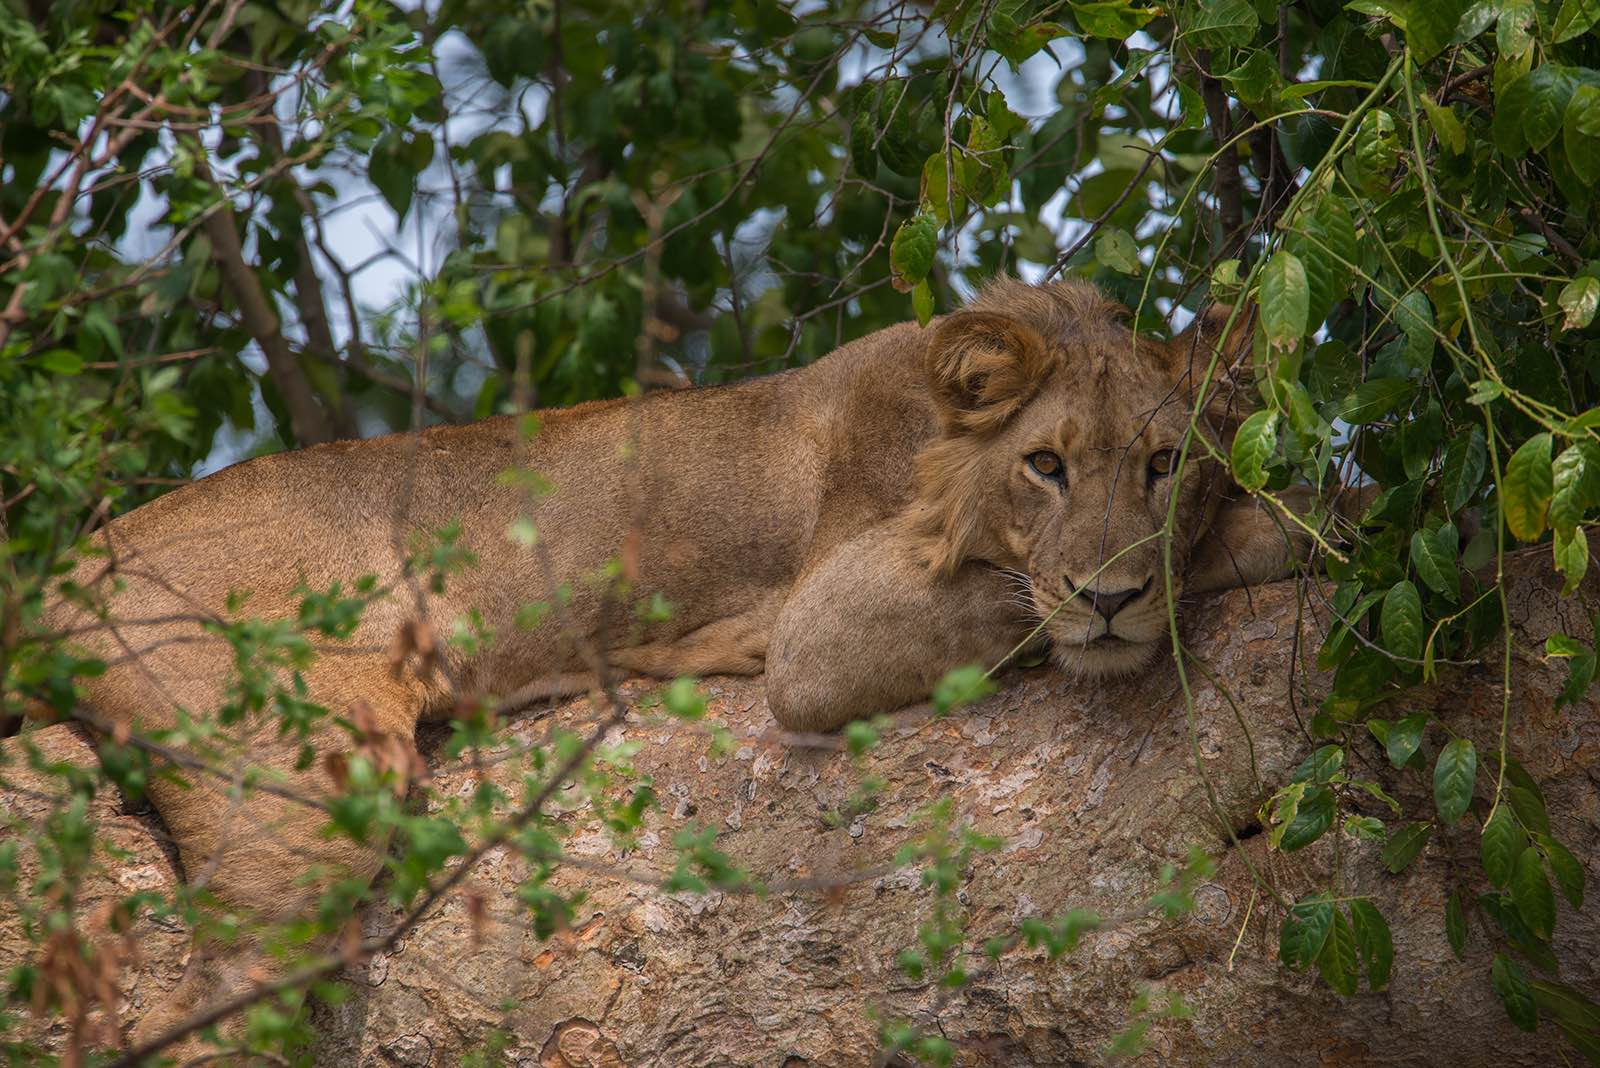 Making eye contact with a young male tree-climbing lion in Uganda